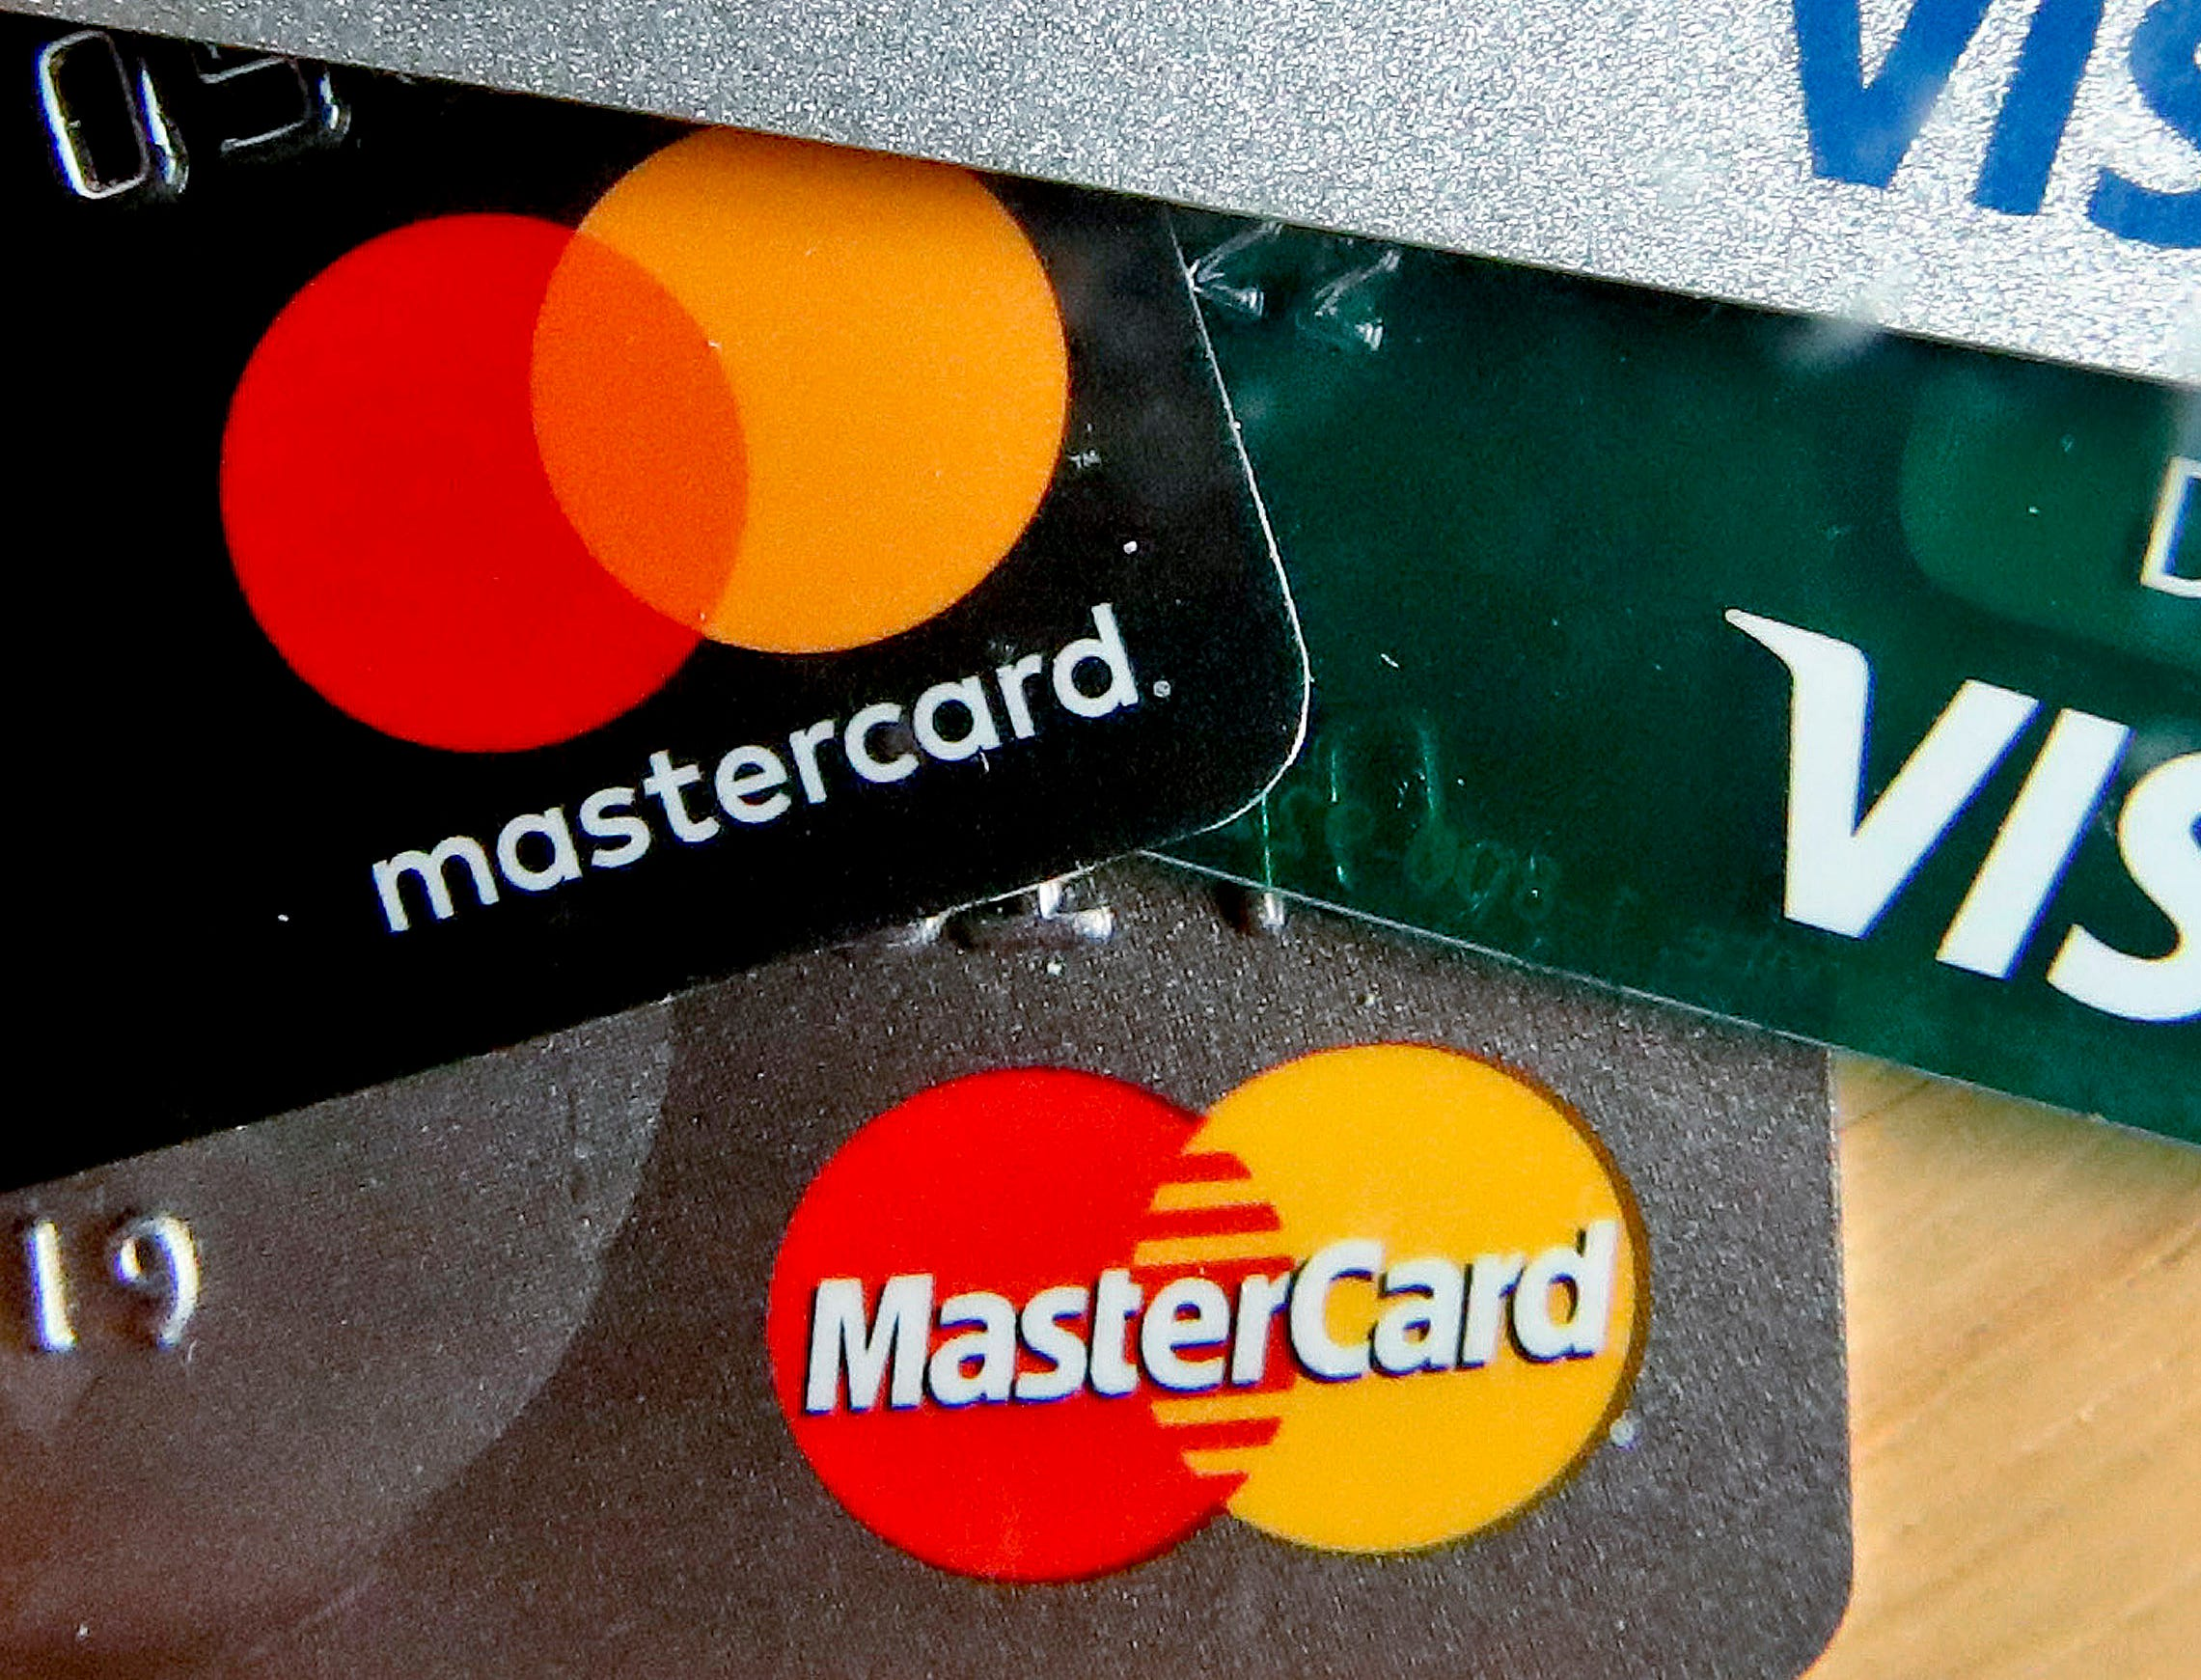 Transgender people can use chosen names on cards, Mastercard says